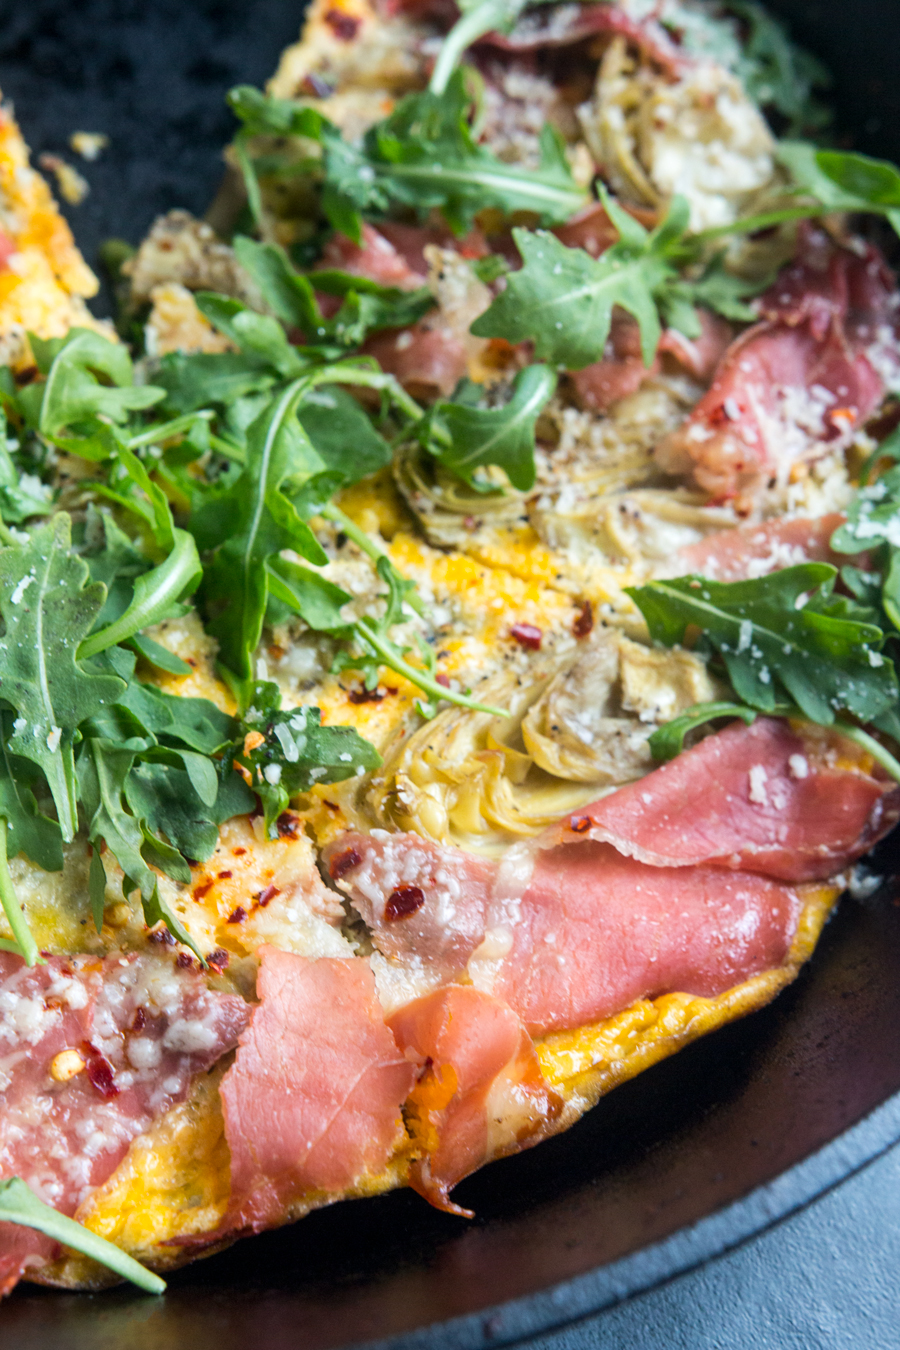 This simple Artichoke Prosciutto Frittata is a flavorful high-protein meal that can be made in advance.